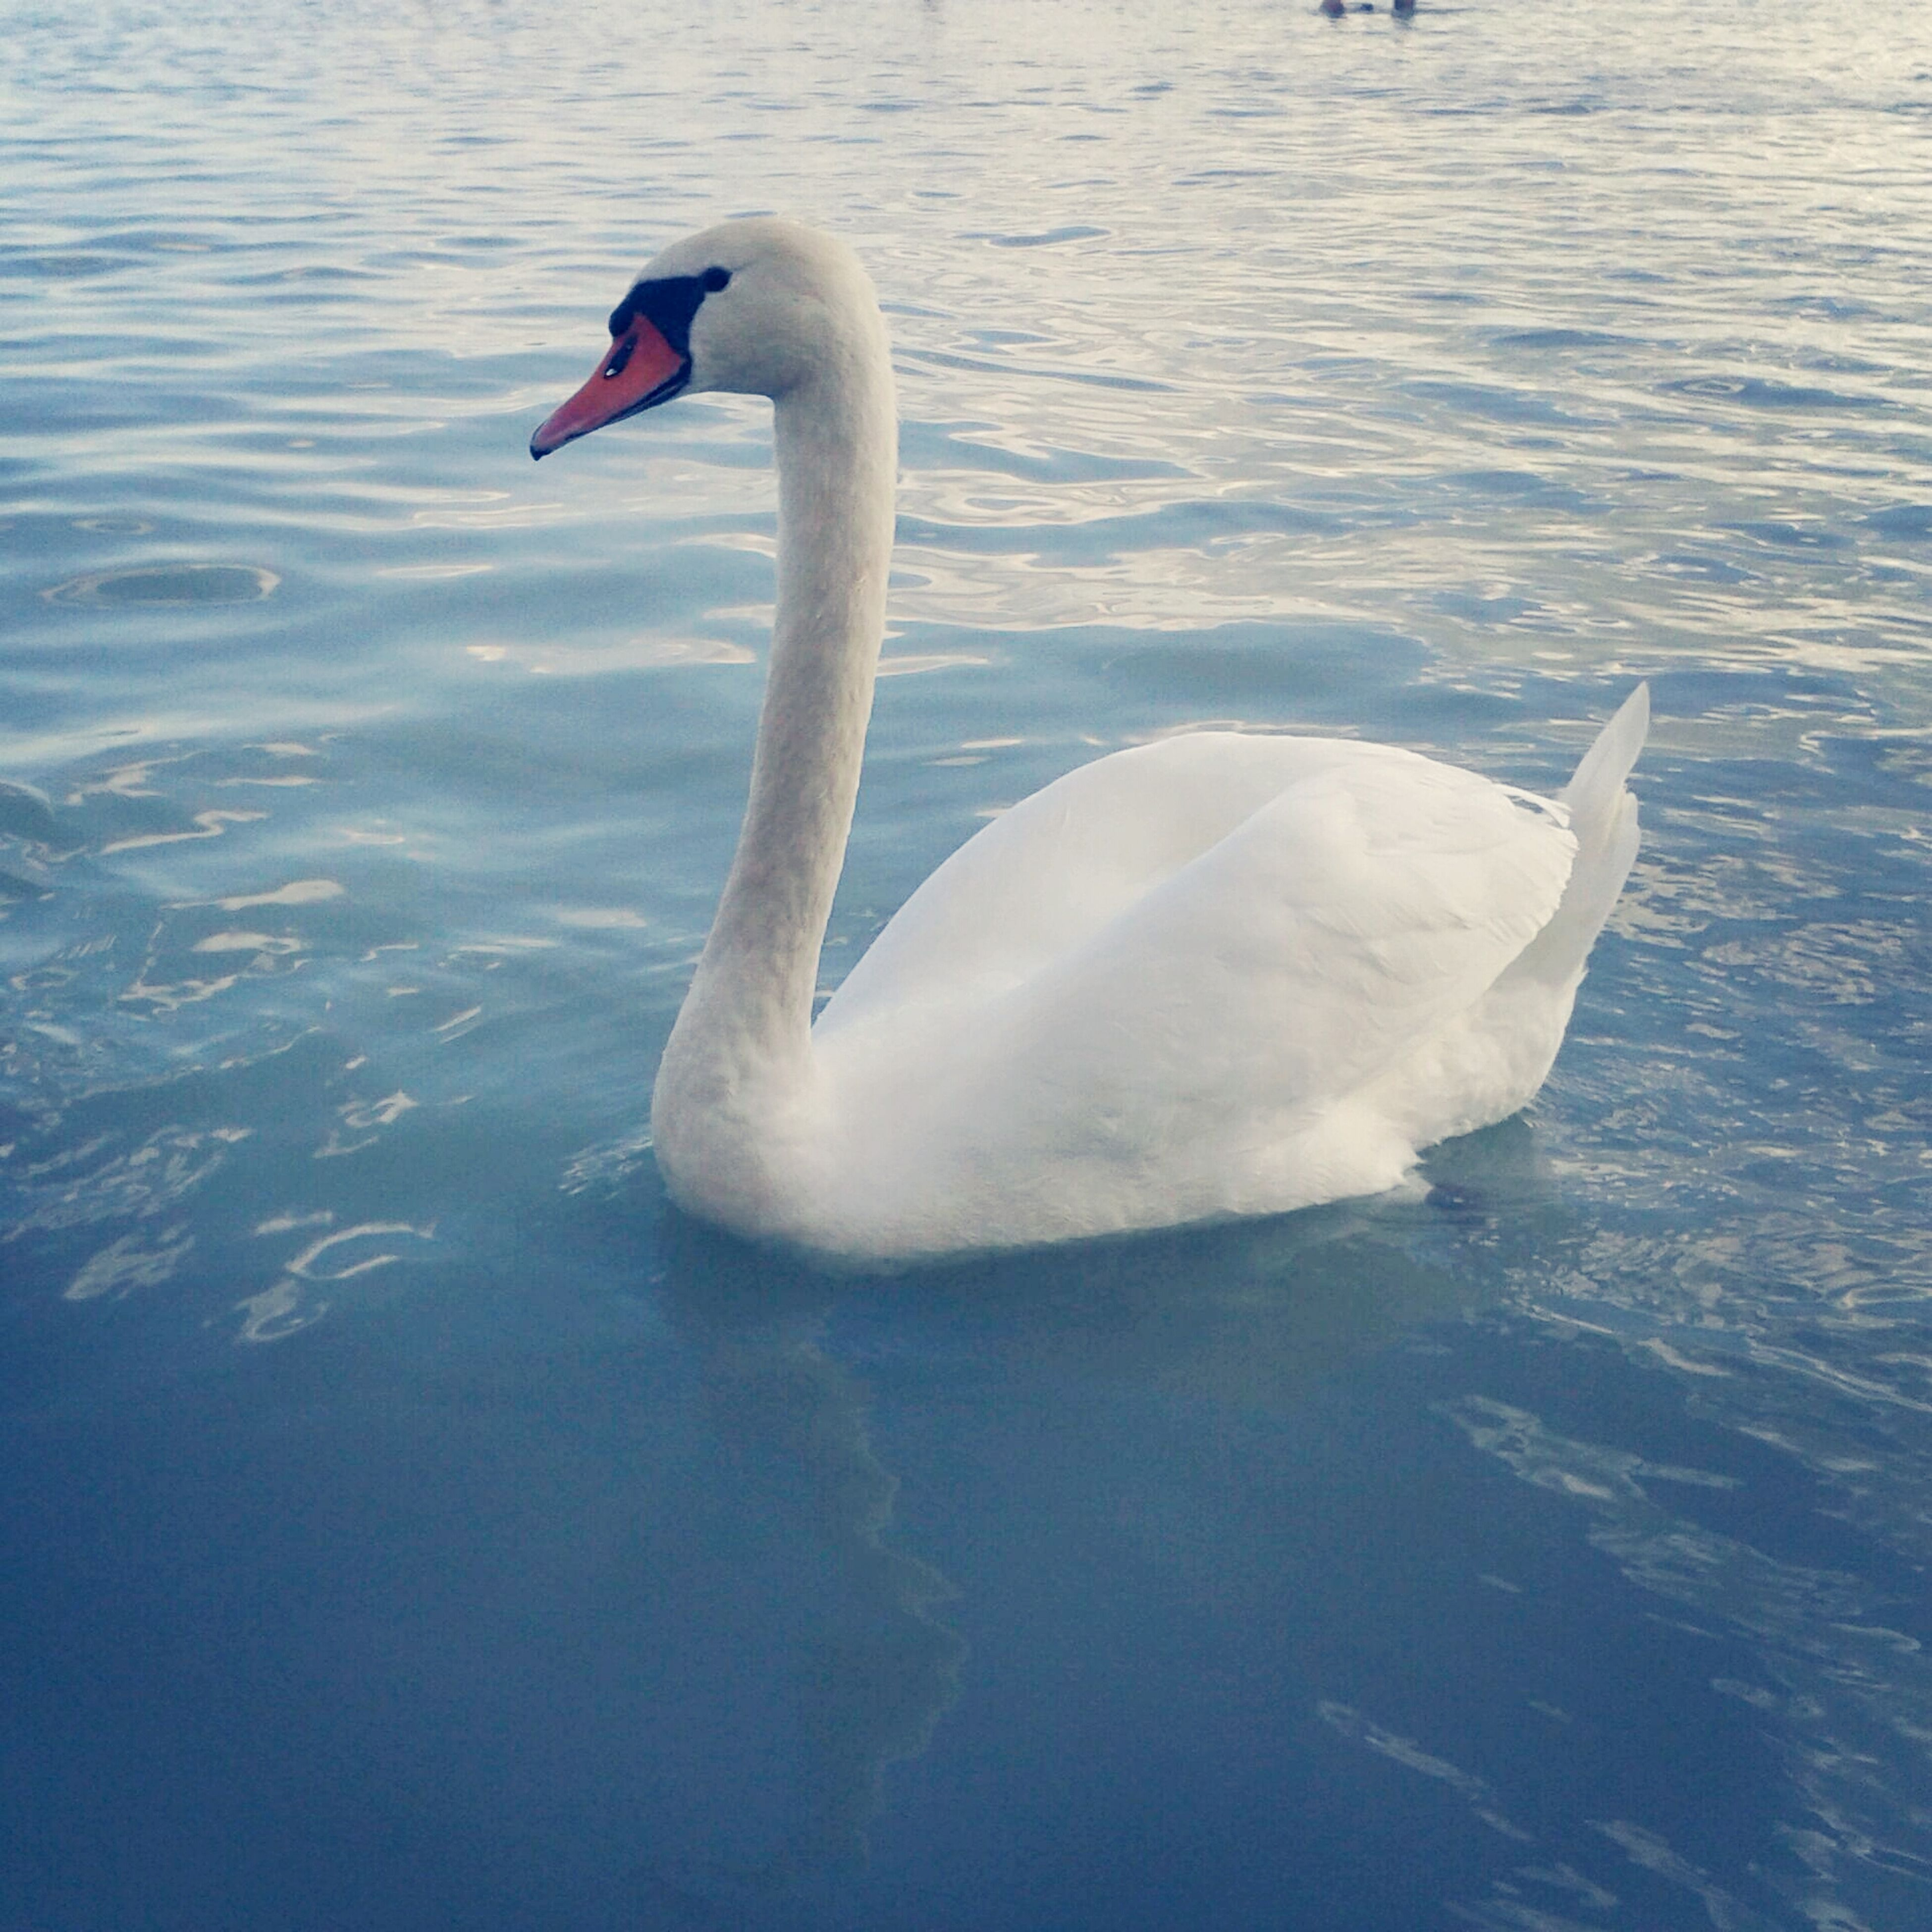 animal themes, bird, water, animals in the wild, wildlife, swan, lake, swimming, white color, waterfront, rippled, reflection, one animal, nature, water bird, two animals, beak, beauty in nature, outdoors, floating on water